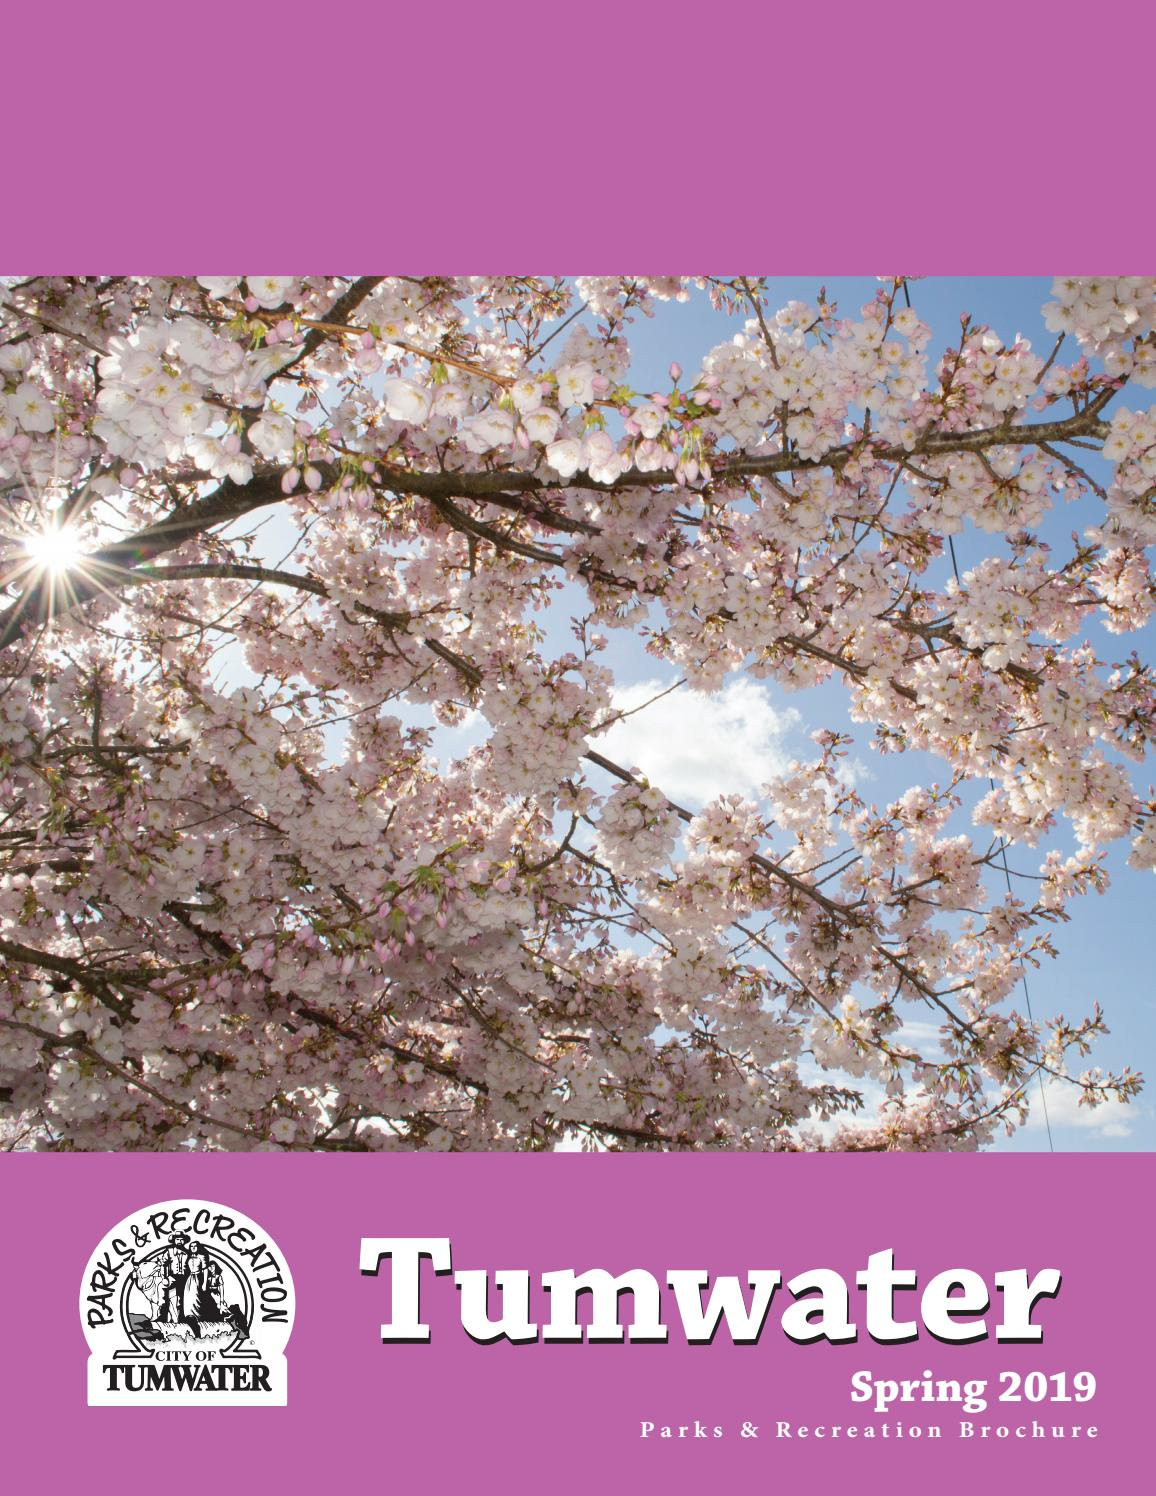 Tumwater Parks & Recreation Spring 2019 Brochure by Tumwater